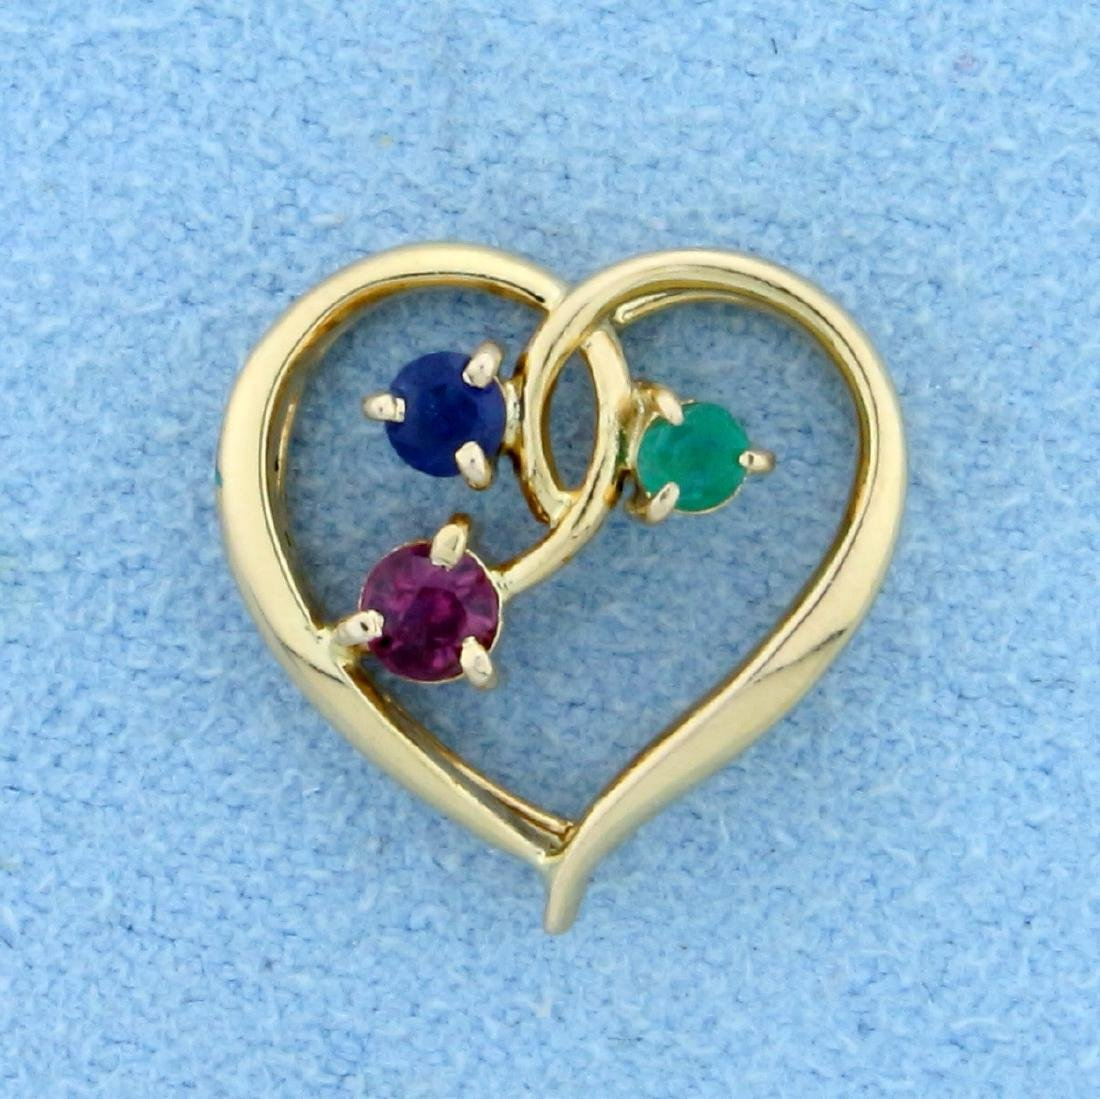 Emerald, Ruby, and Sapphire Heart Pendant in 14K Yellow